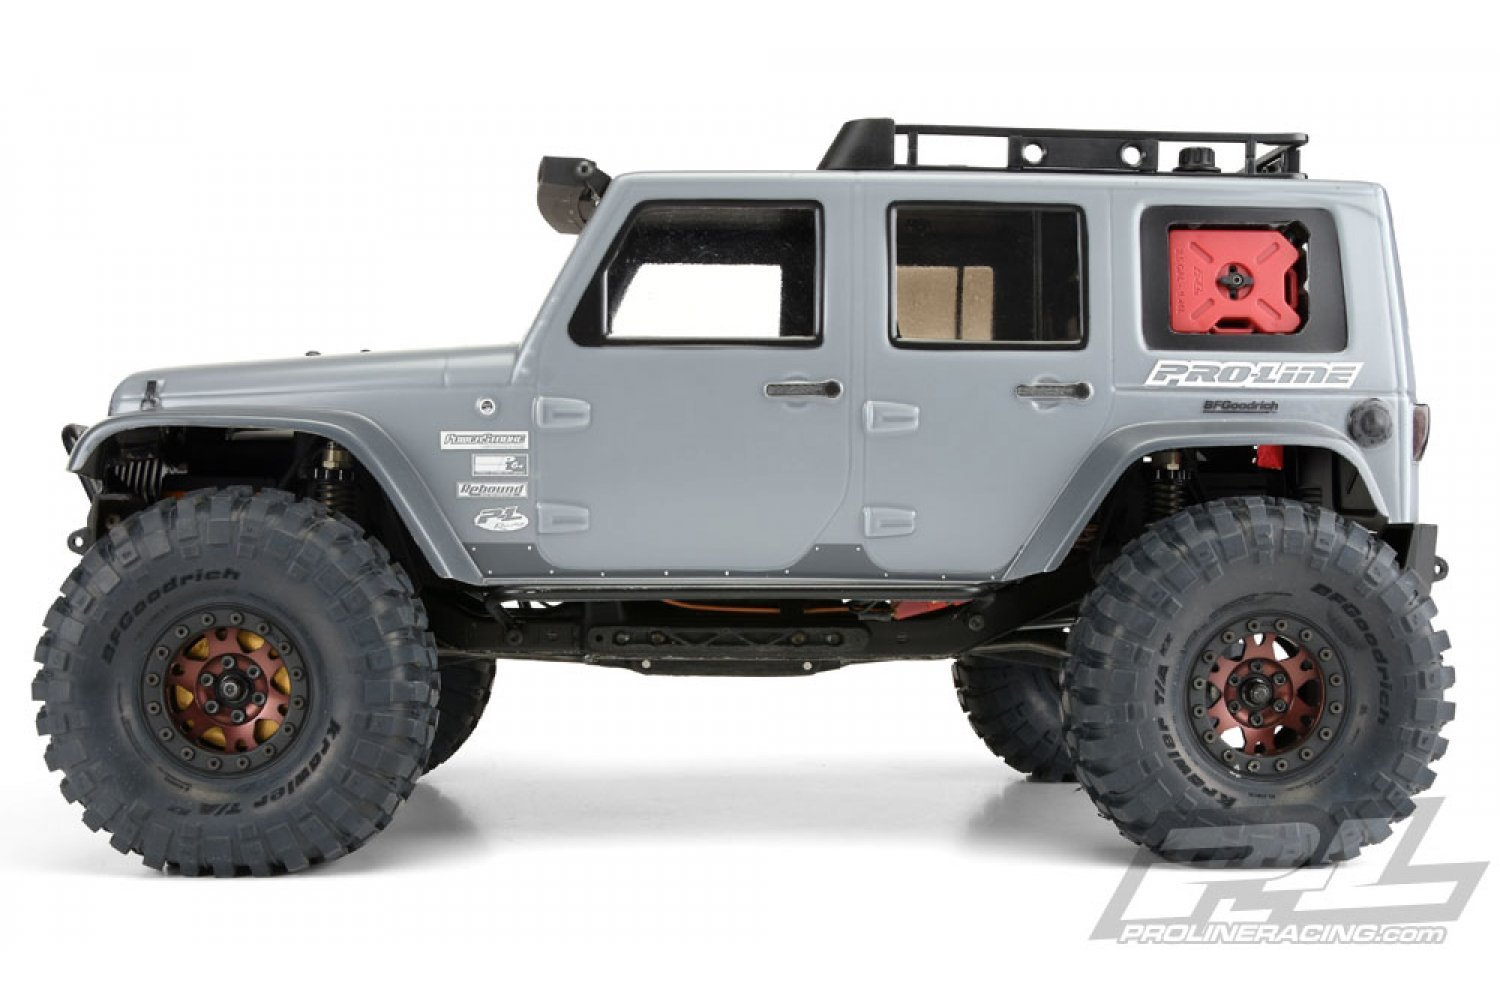 3336-00 | Pro-Line 1/10 Jeep Wrangler Unlimited Rubicon Unpainted Body Shell